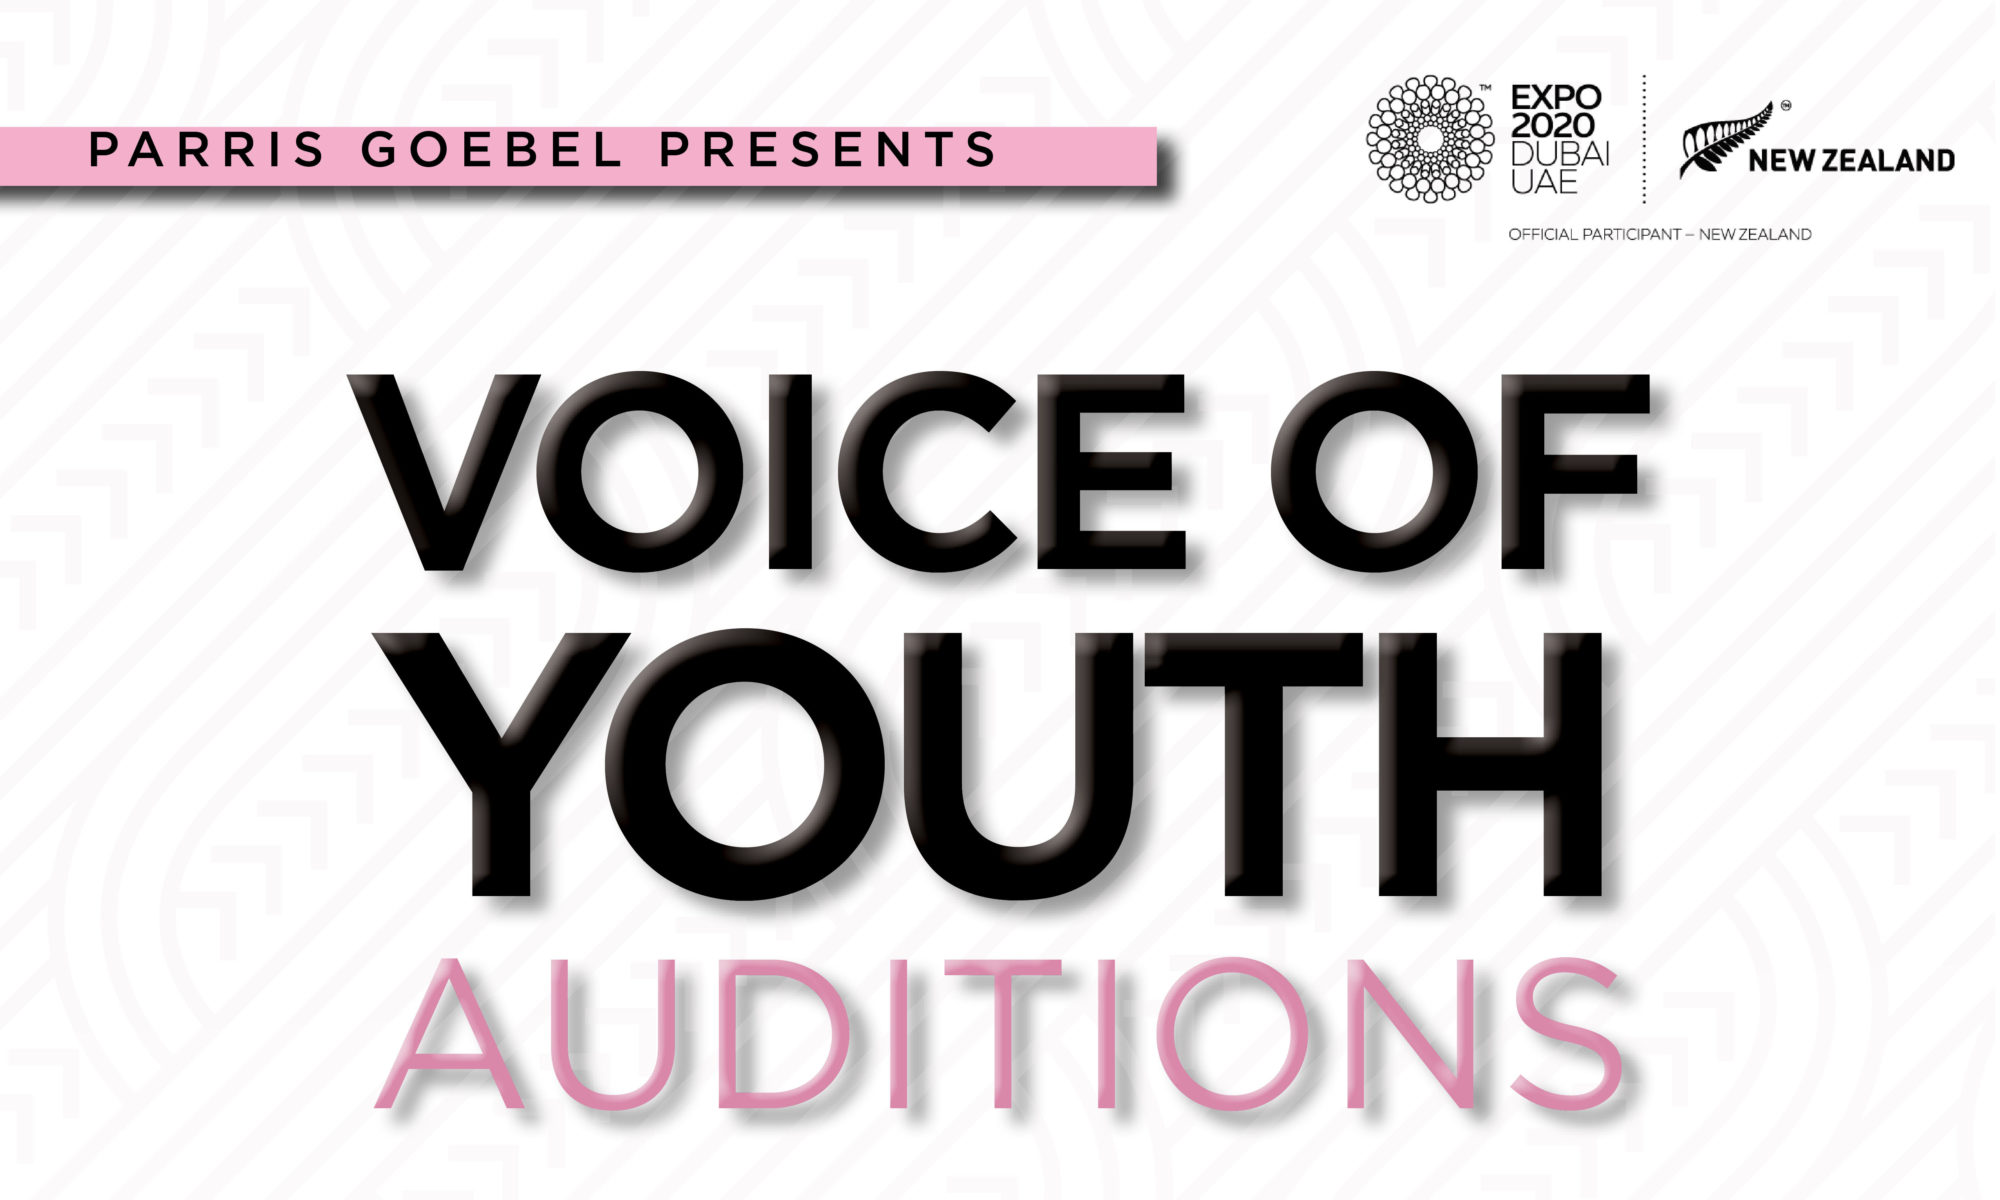 Parris Goebel Presents Voice of Youth Auditions